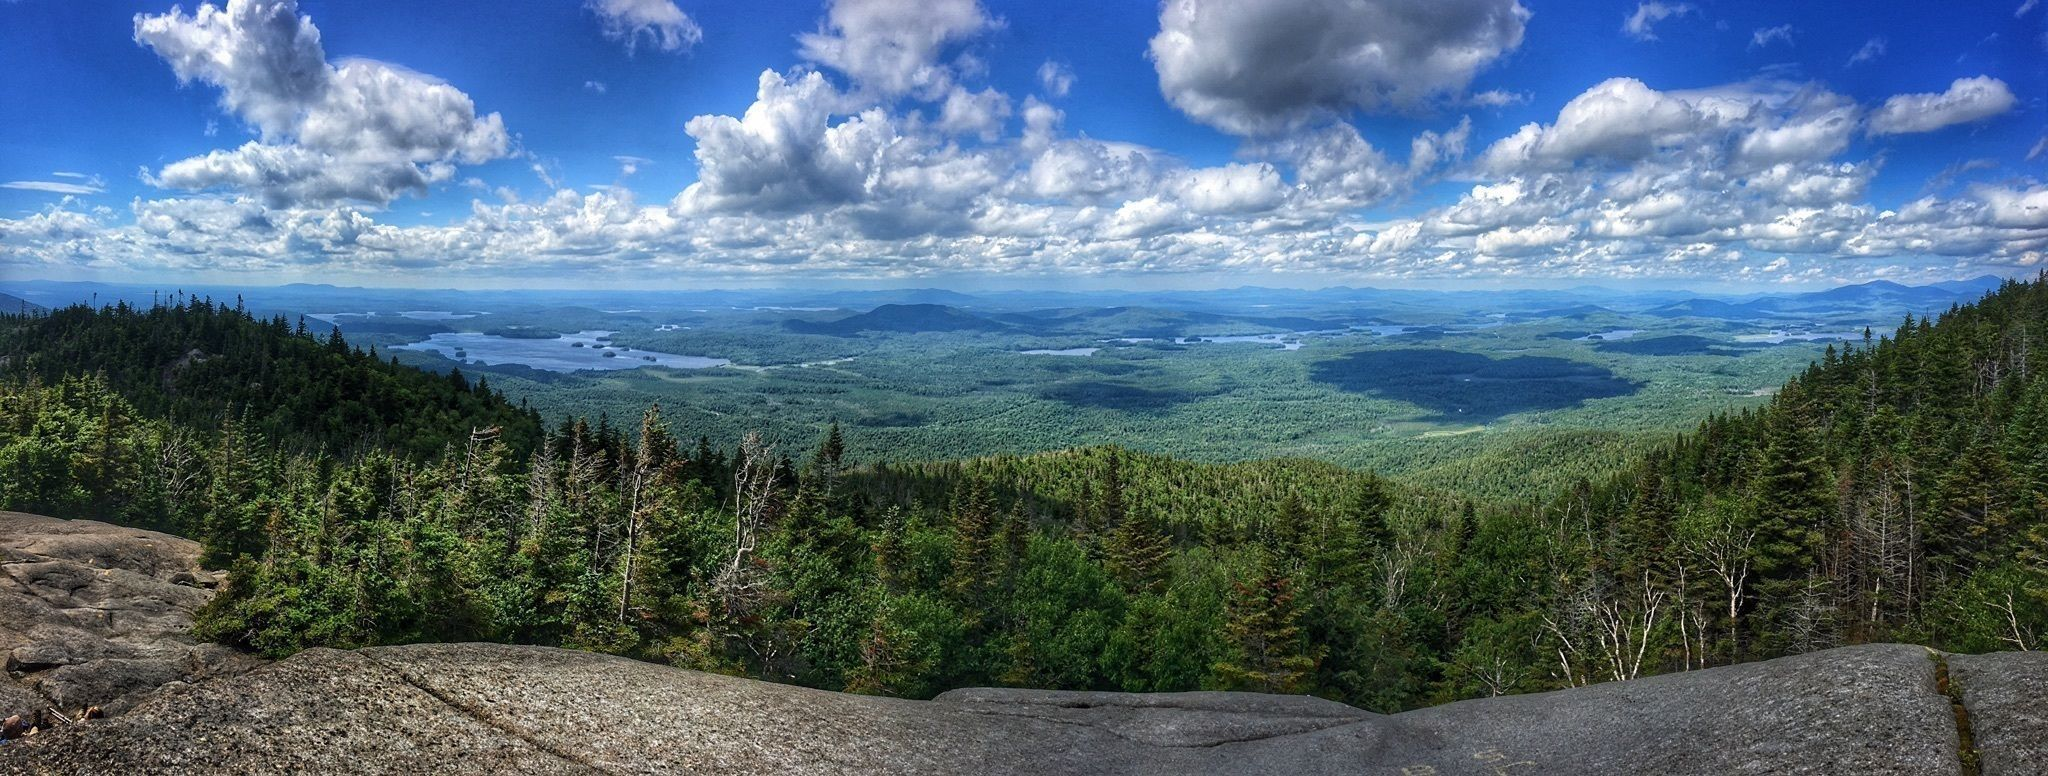 Ampersand Mountain Trail - New York | AllTrails